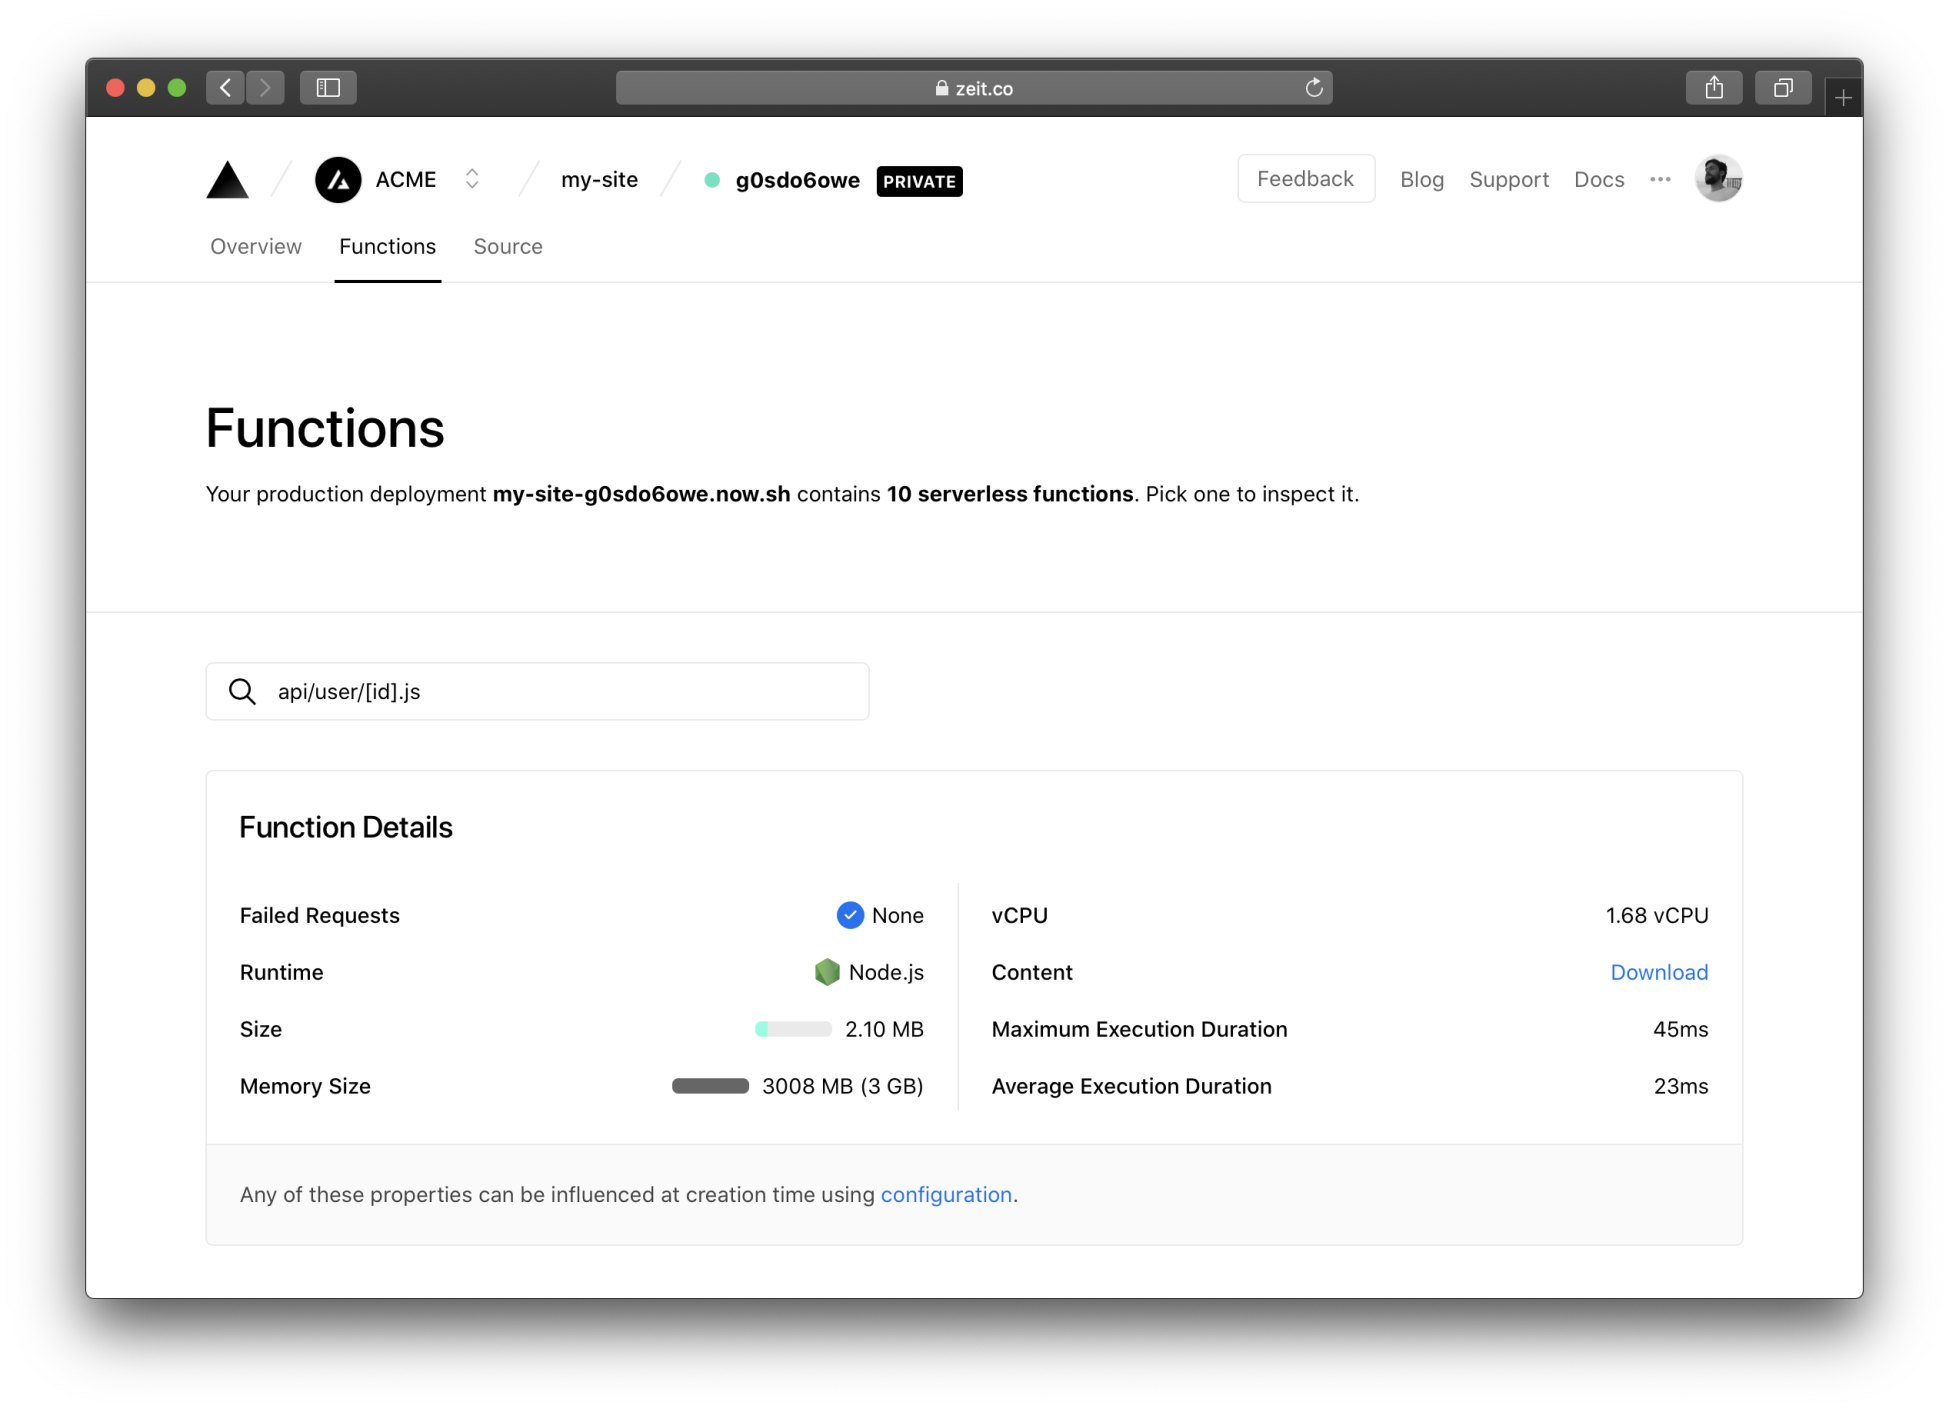 The most important details about your Serverless Functions, all at one glance.